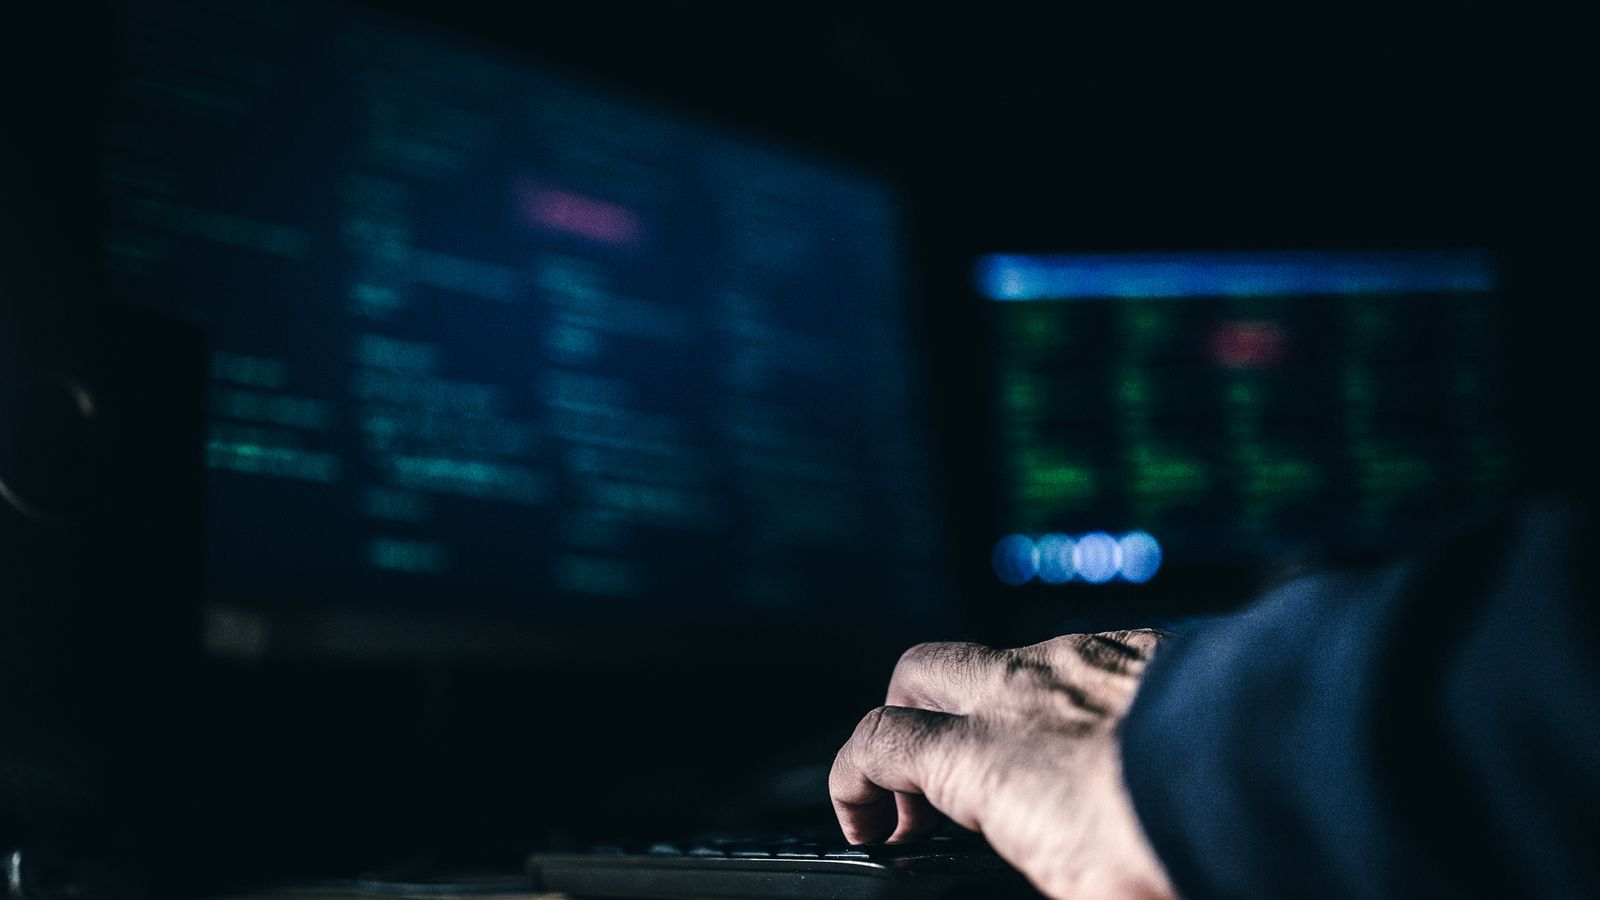 US hospitals facing 'increased and imminent cybercrime threat', FBI warns